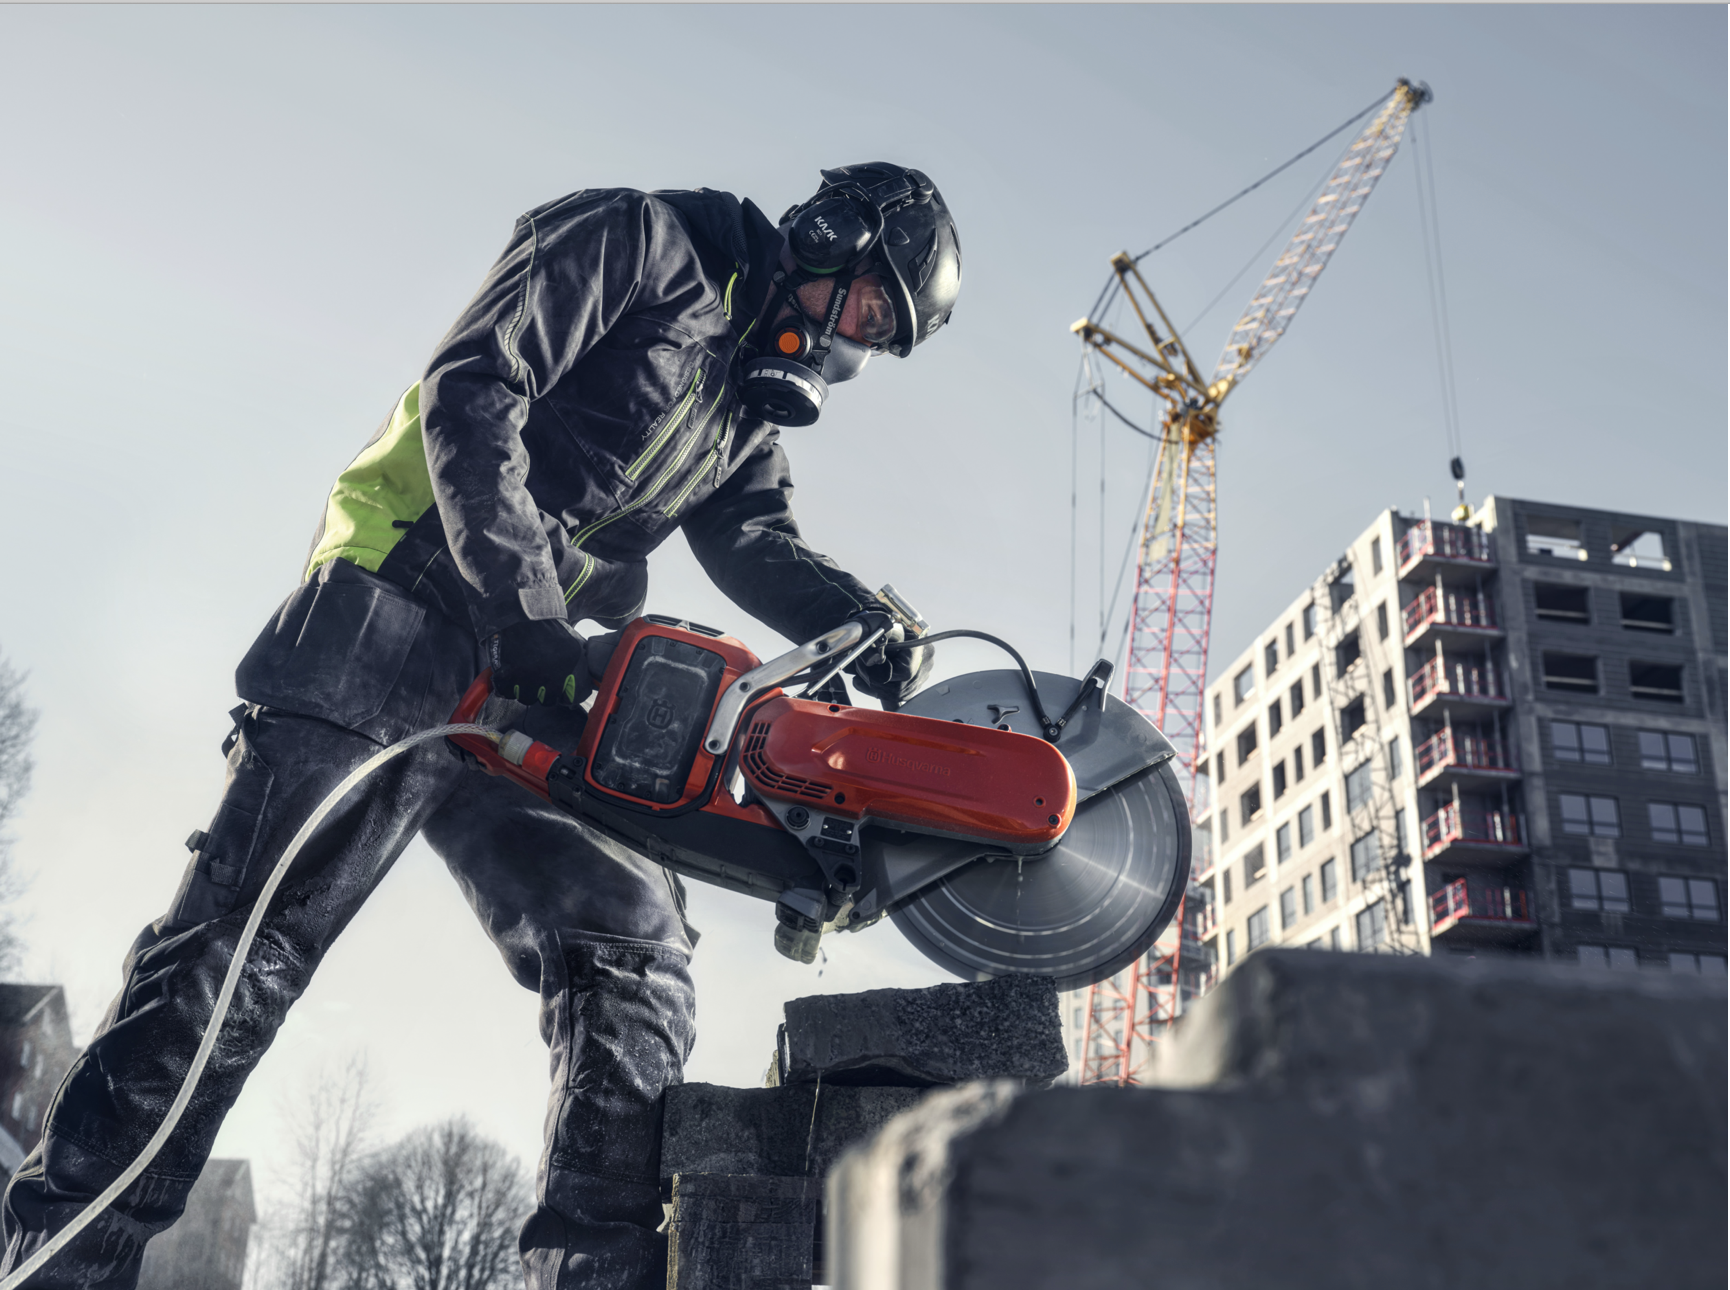 Husqvarna's new battery system will match power outputs of gasoline-based models.